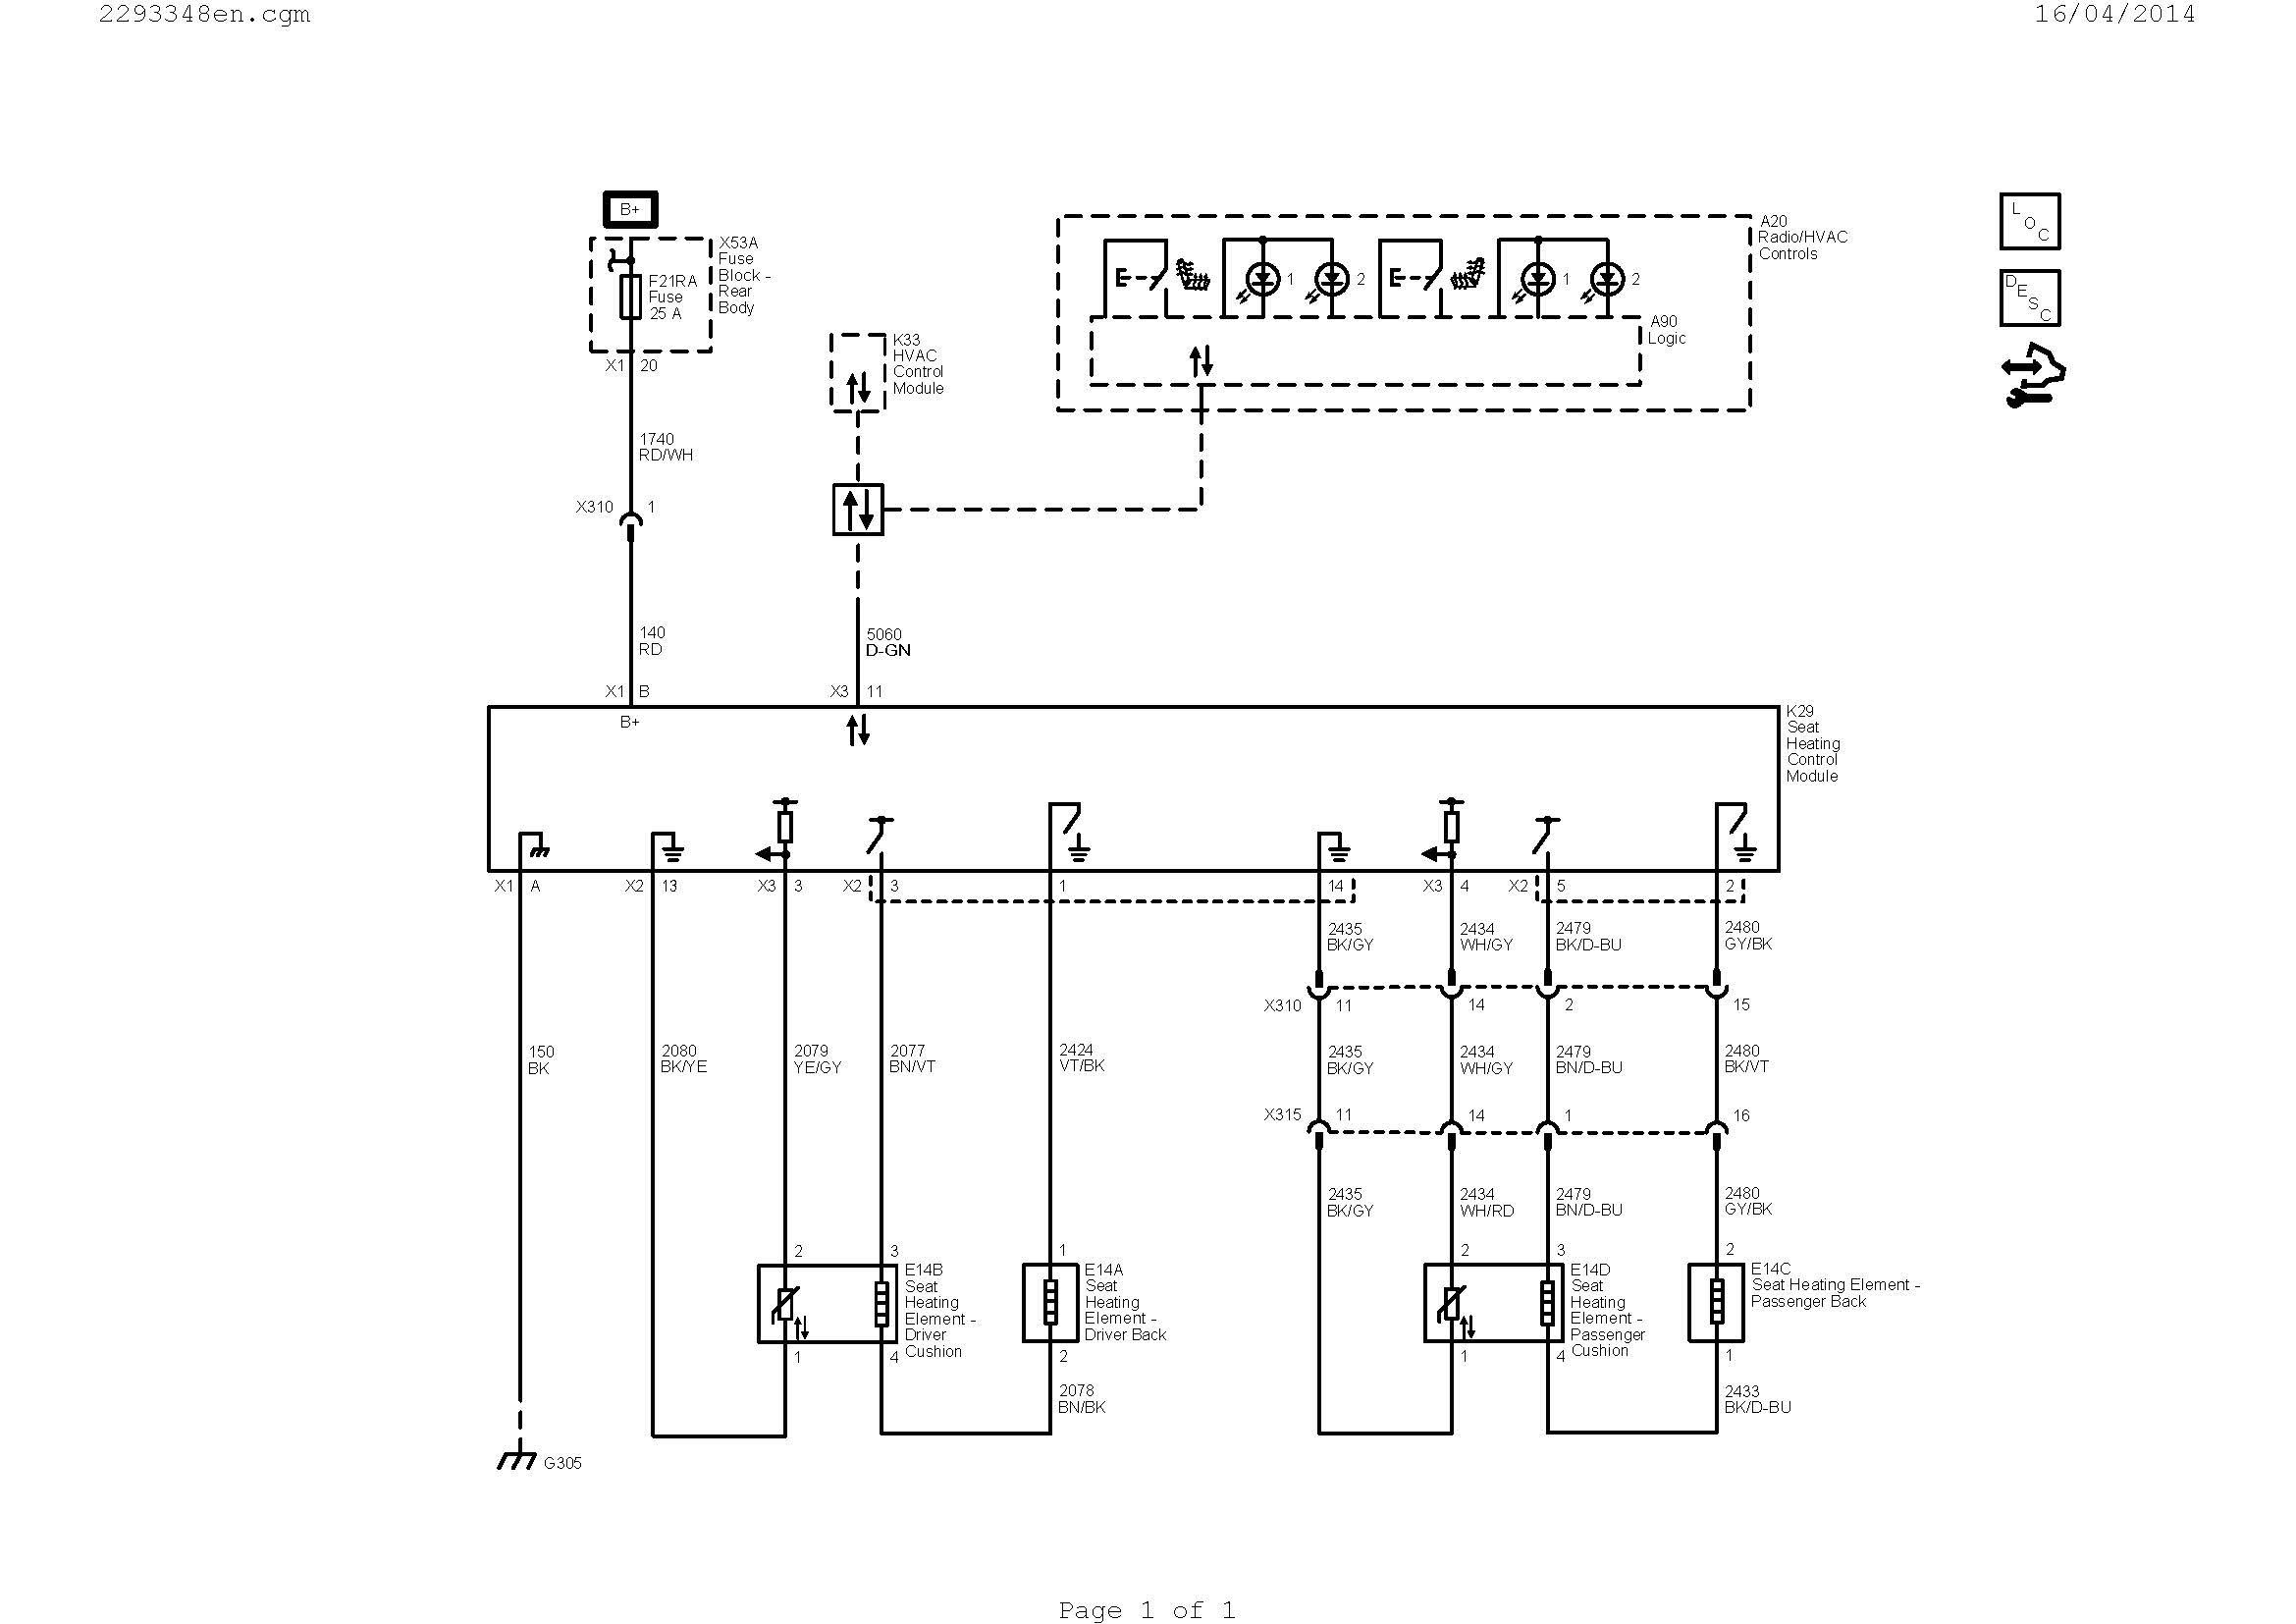 c17 thermostat wiring diagram Download-c17 thermostat wiring diagram Collection Air Conditioner thermostat Wiring Diagram Download 14 d 18-n